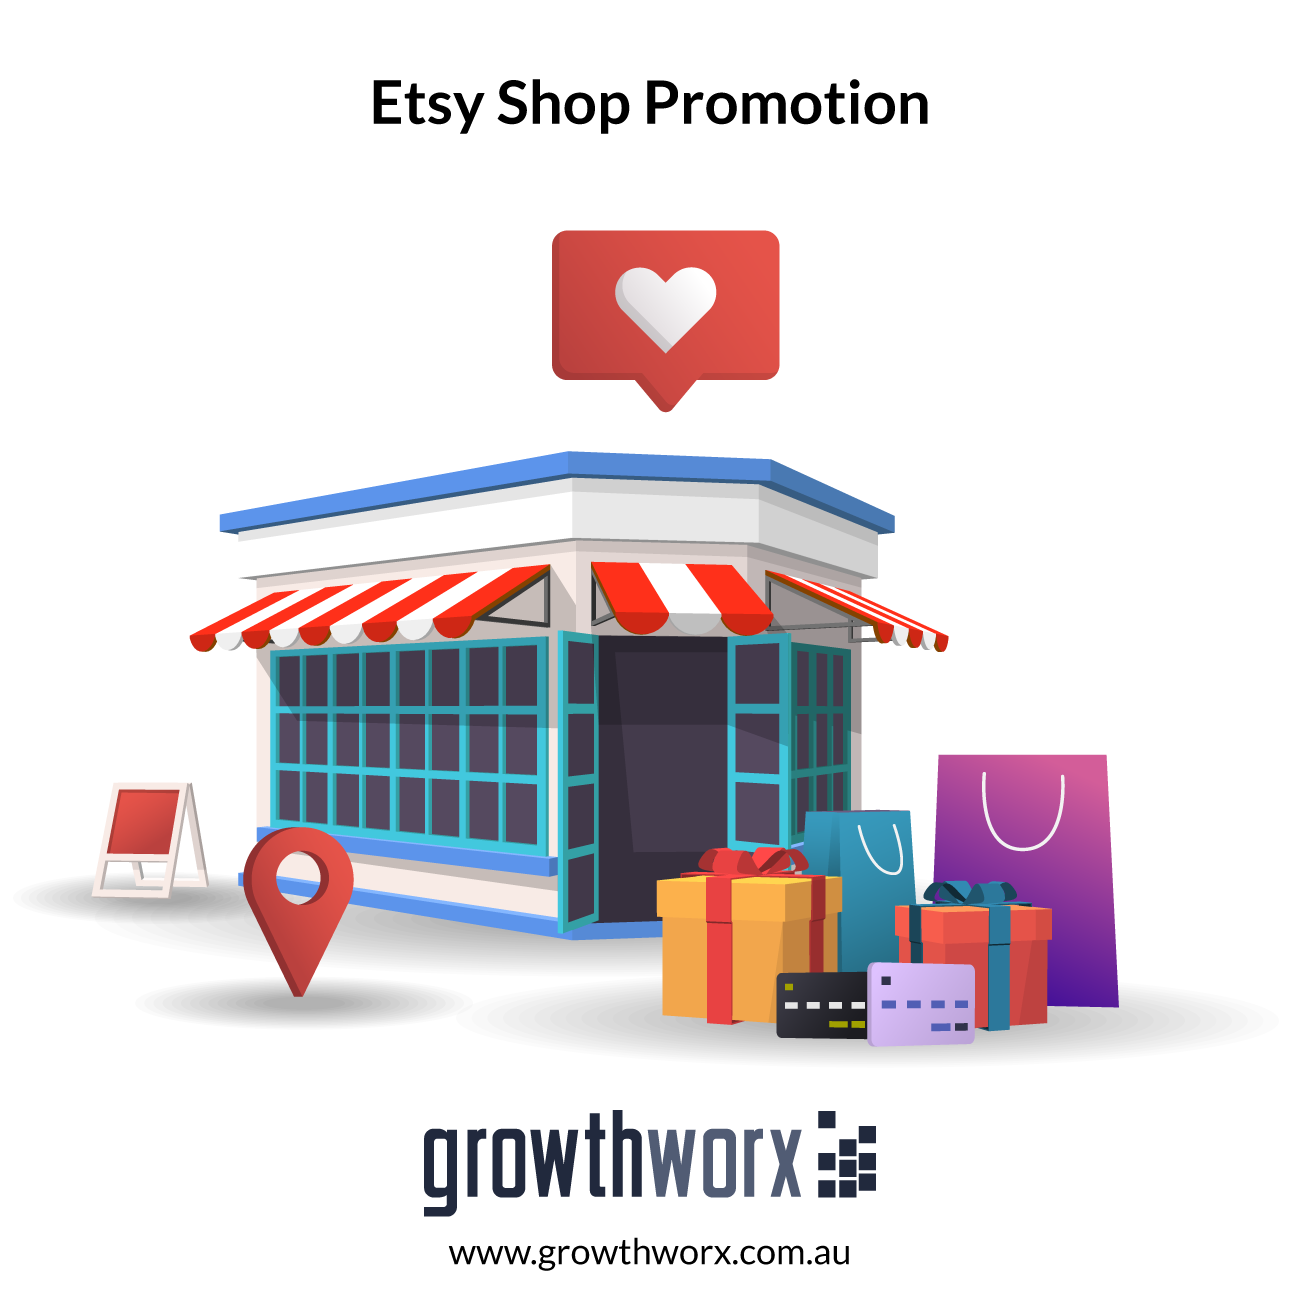 I will do etsy shop promotion to get etsy sales 1